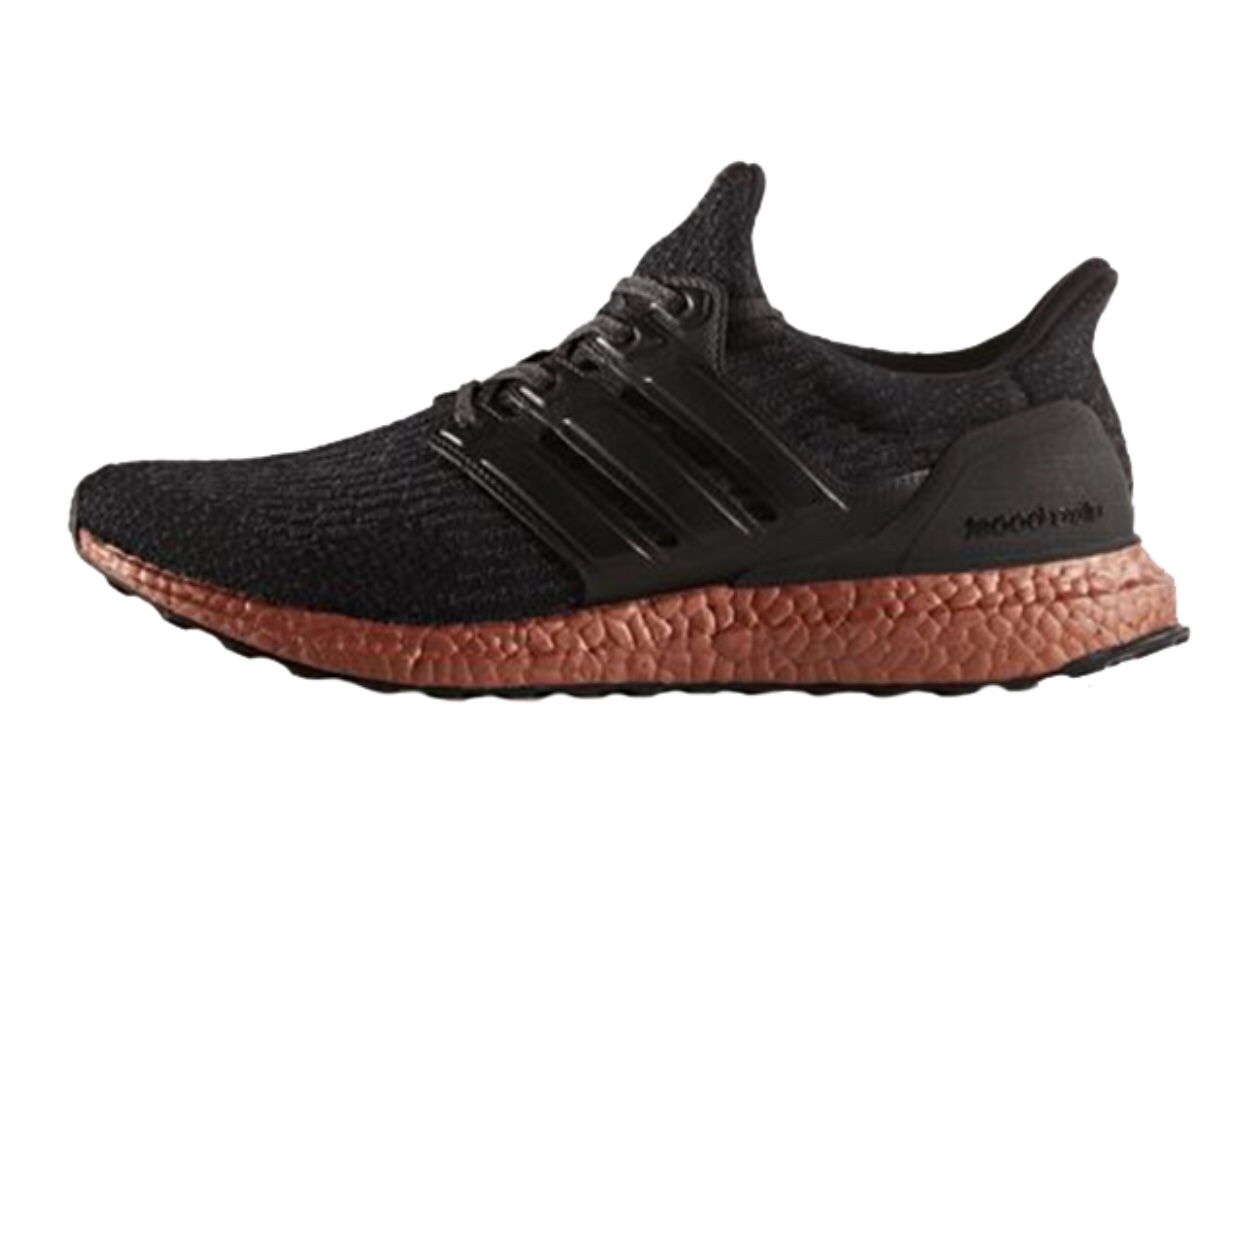 30d7be4baf53c Ultra boost bronze edition. Size 8. 10 10 quality. Extremely - Depop